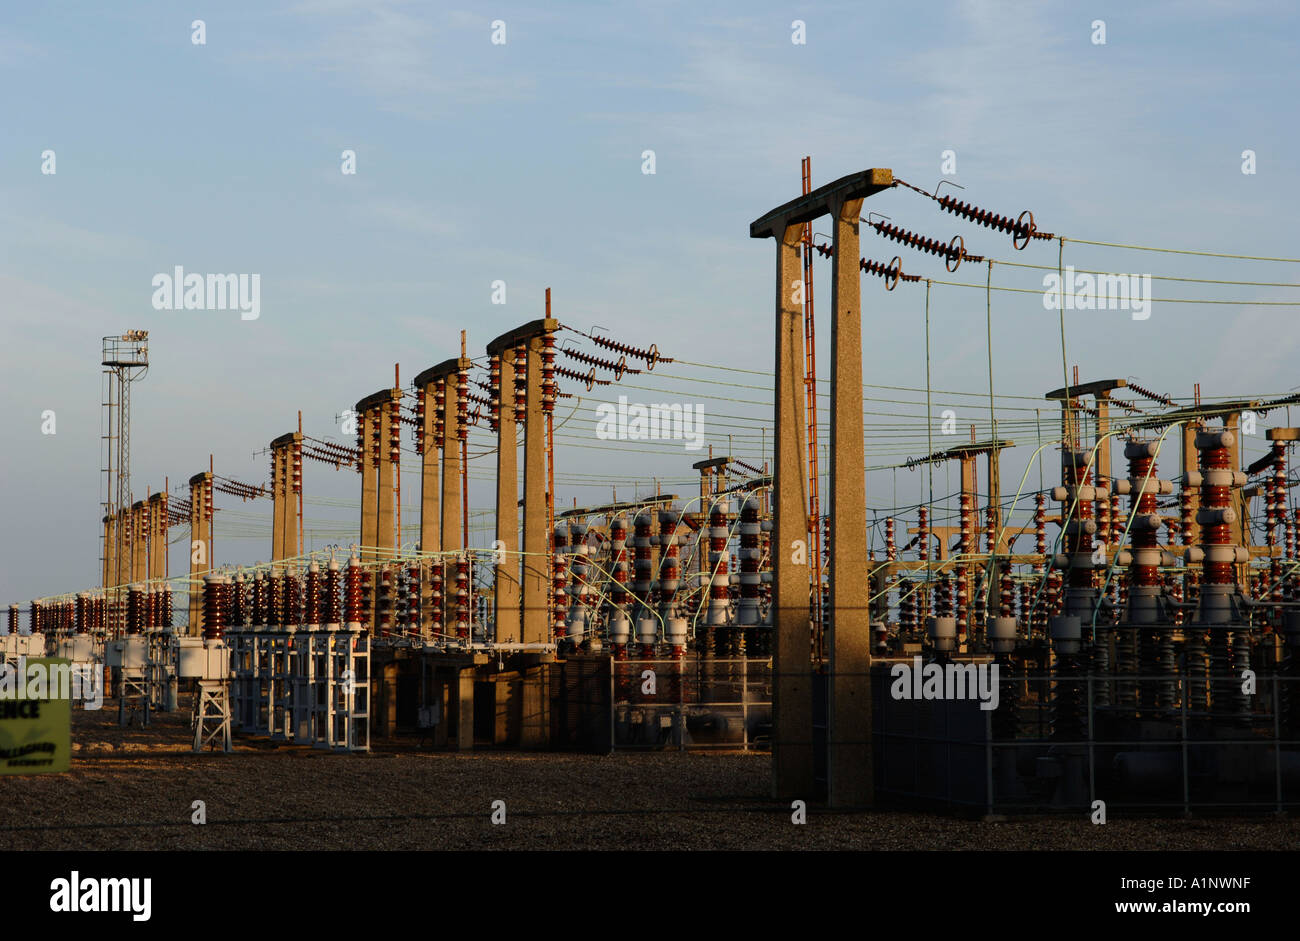 Electricity substation at Bradwell Nuclear Power Station, Essex, England, UK - Stock Image